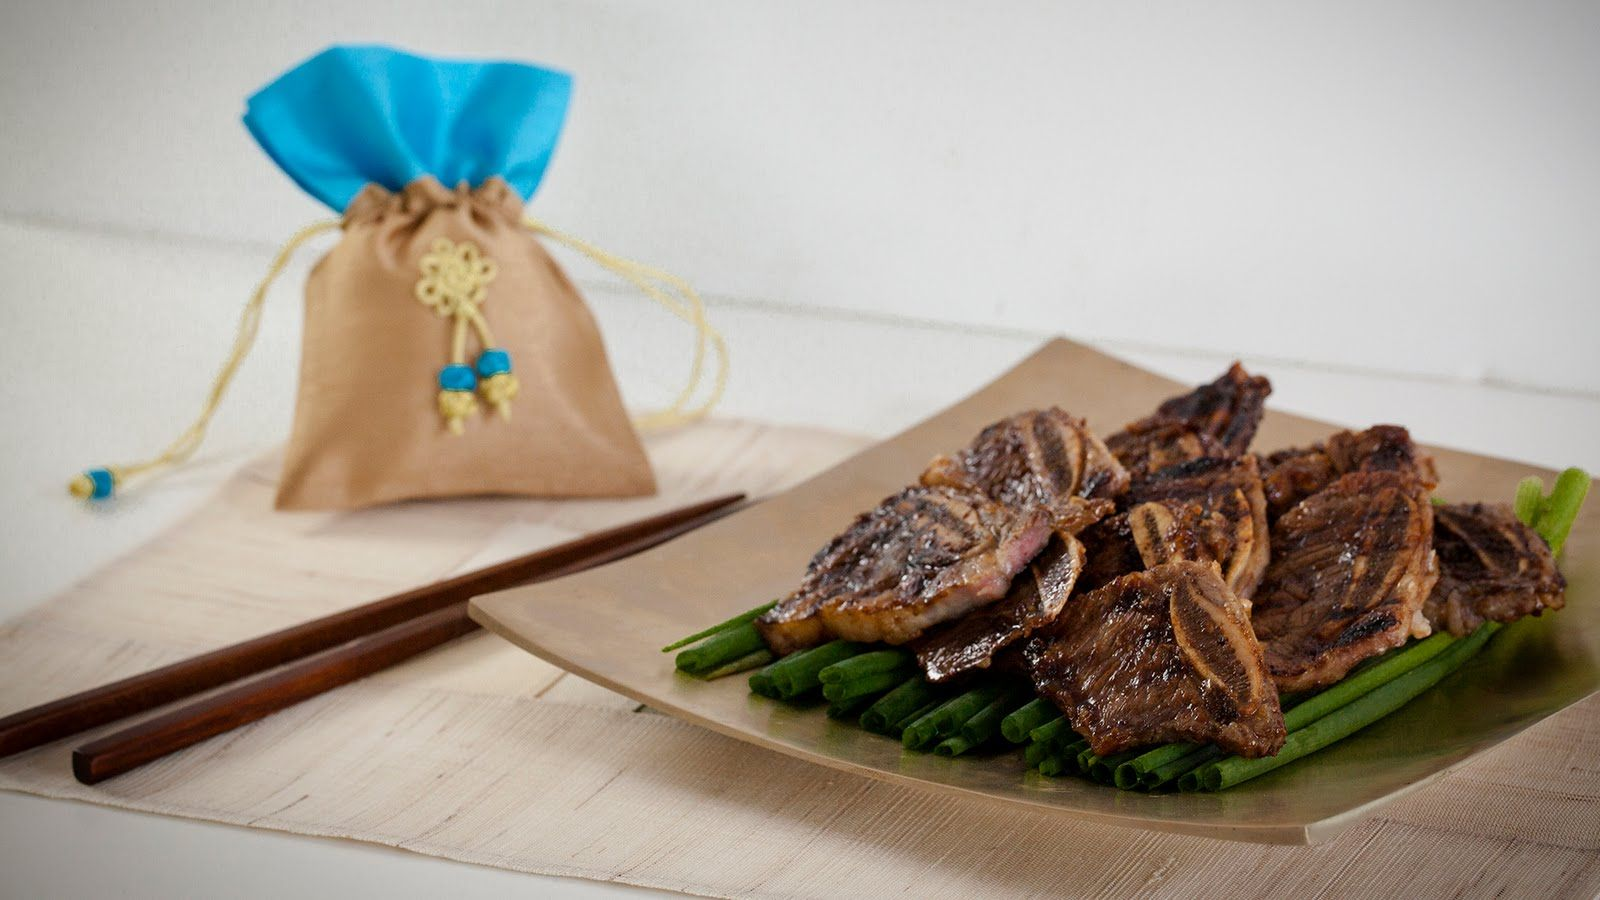 Korean beef short ribs galbi recipe korean series video 2 korean beef short ribs galbi recipe korean series video 2 forumfinder Image collections